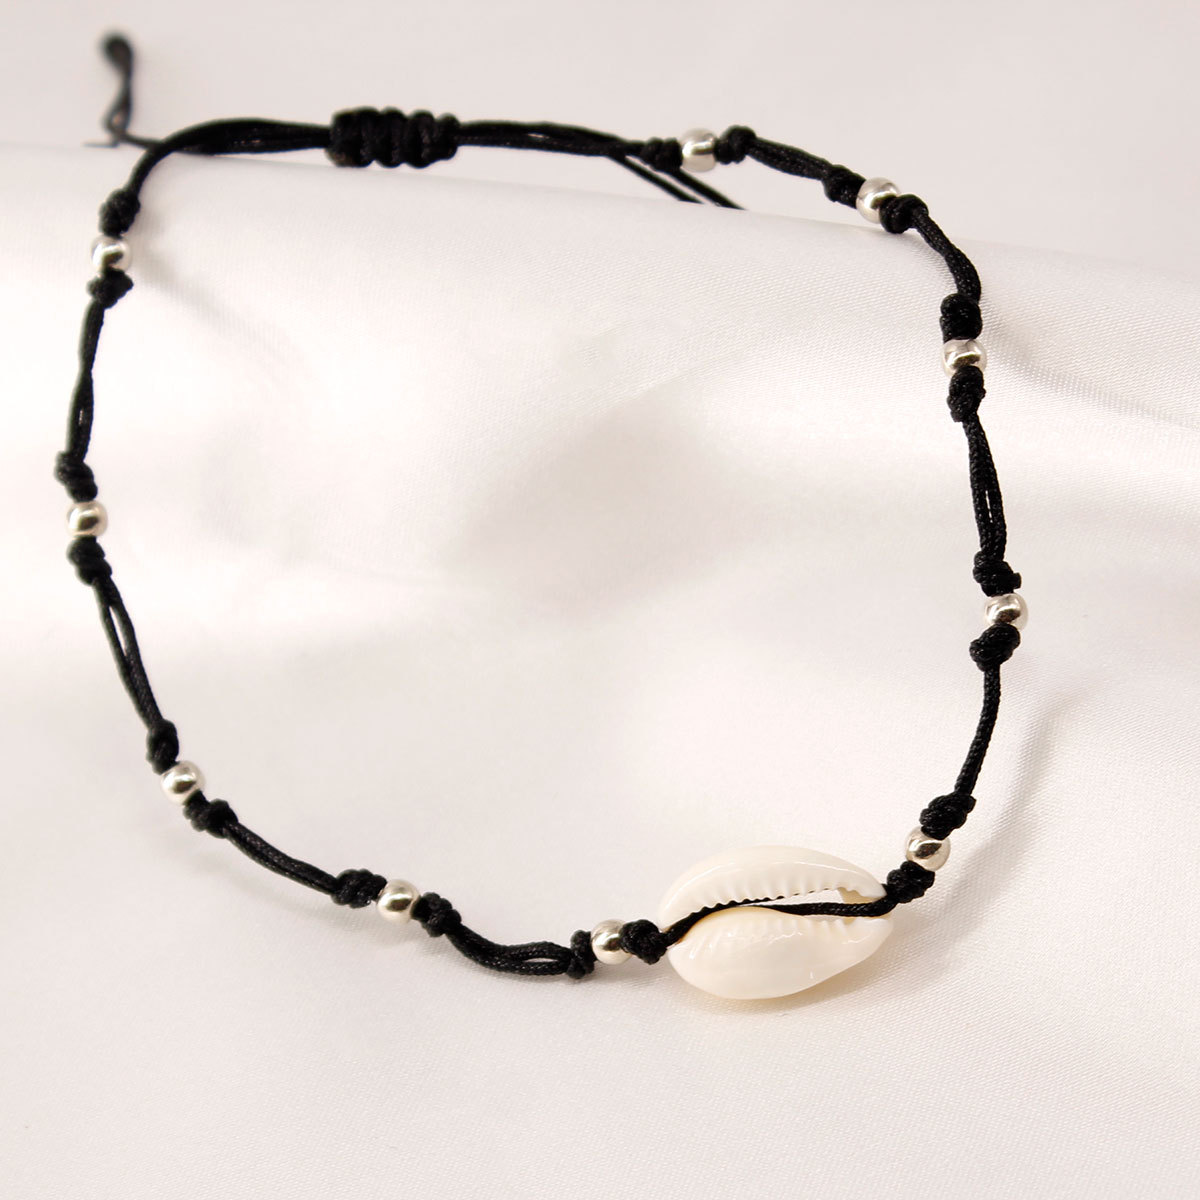 New Wax Wire Handmade Beaded Shell Foot Chain Ankle Bracelets Female Personality Beach Foot Anklets Jewelry in Anklets from Jewelry Accessories